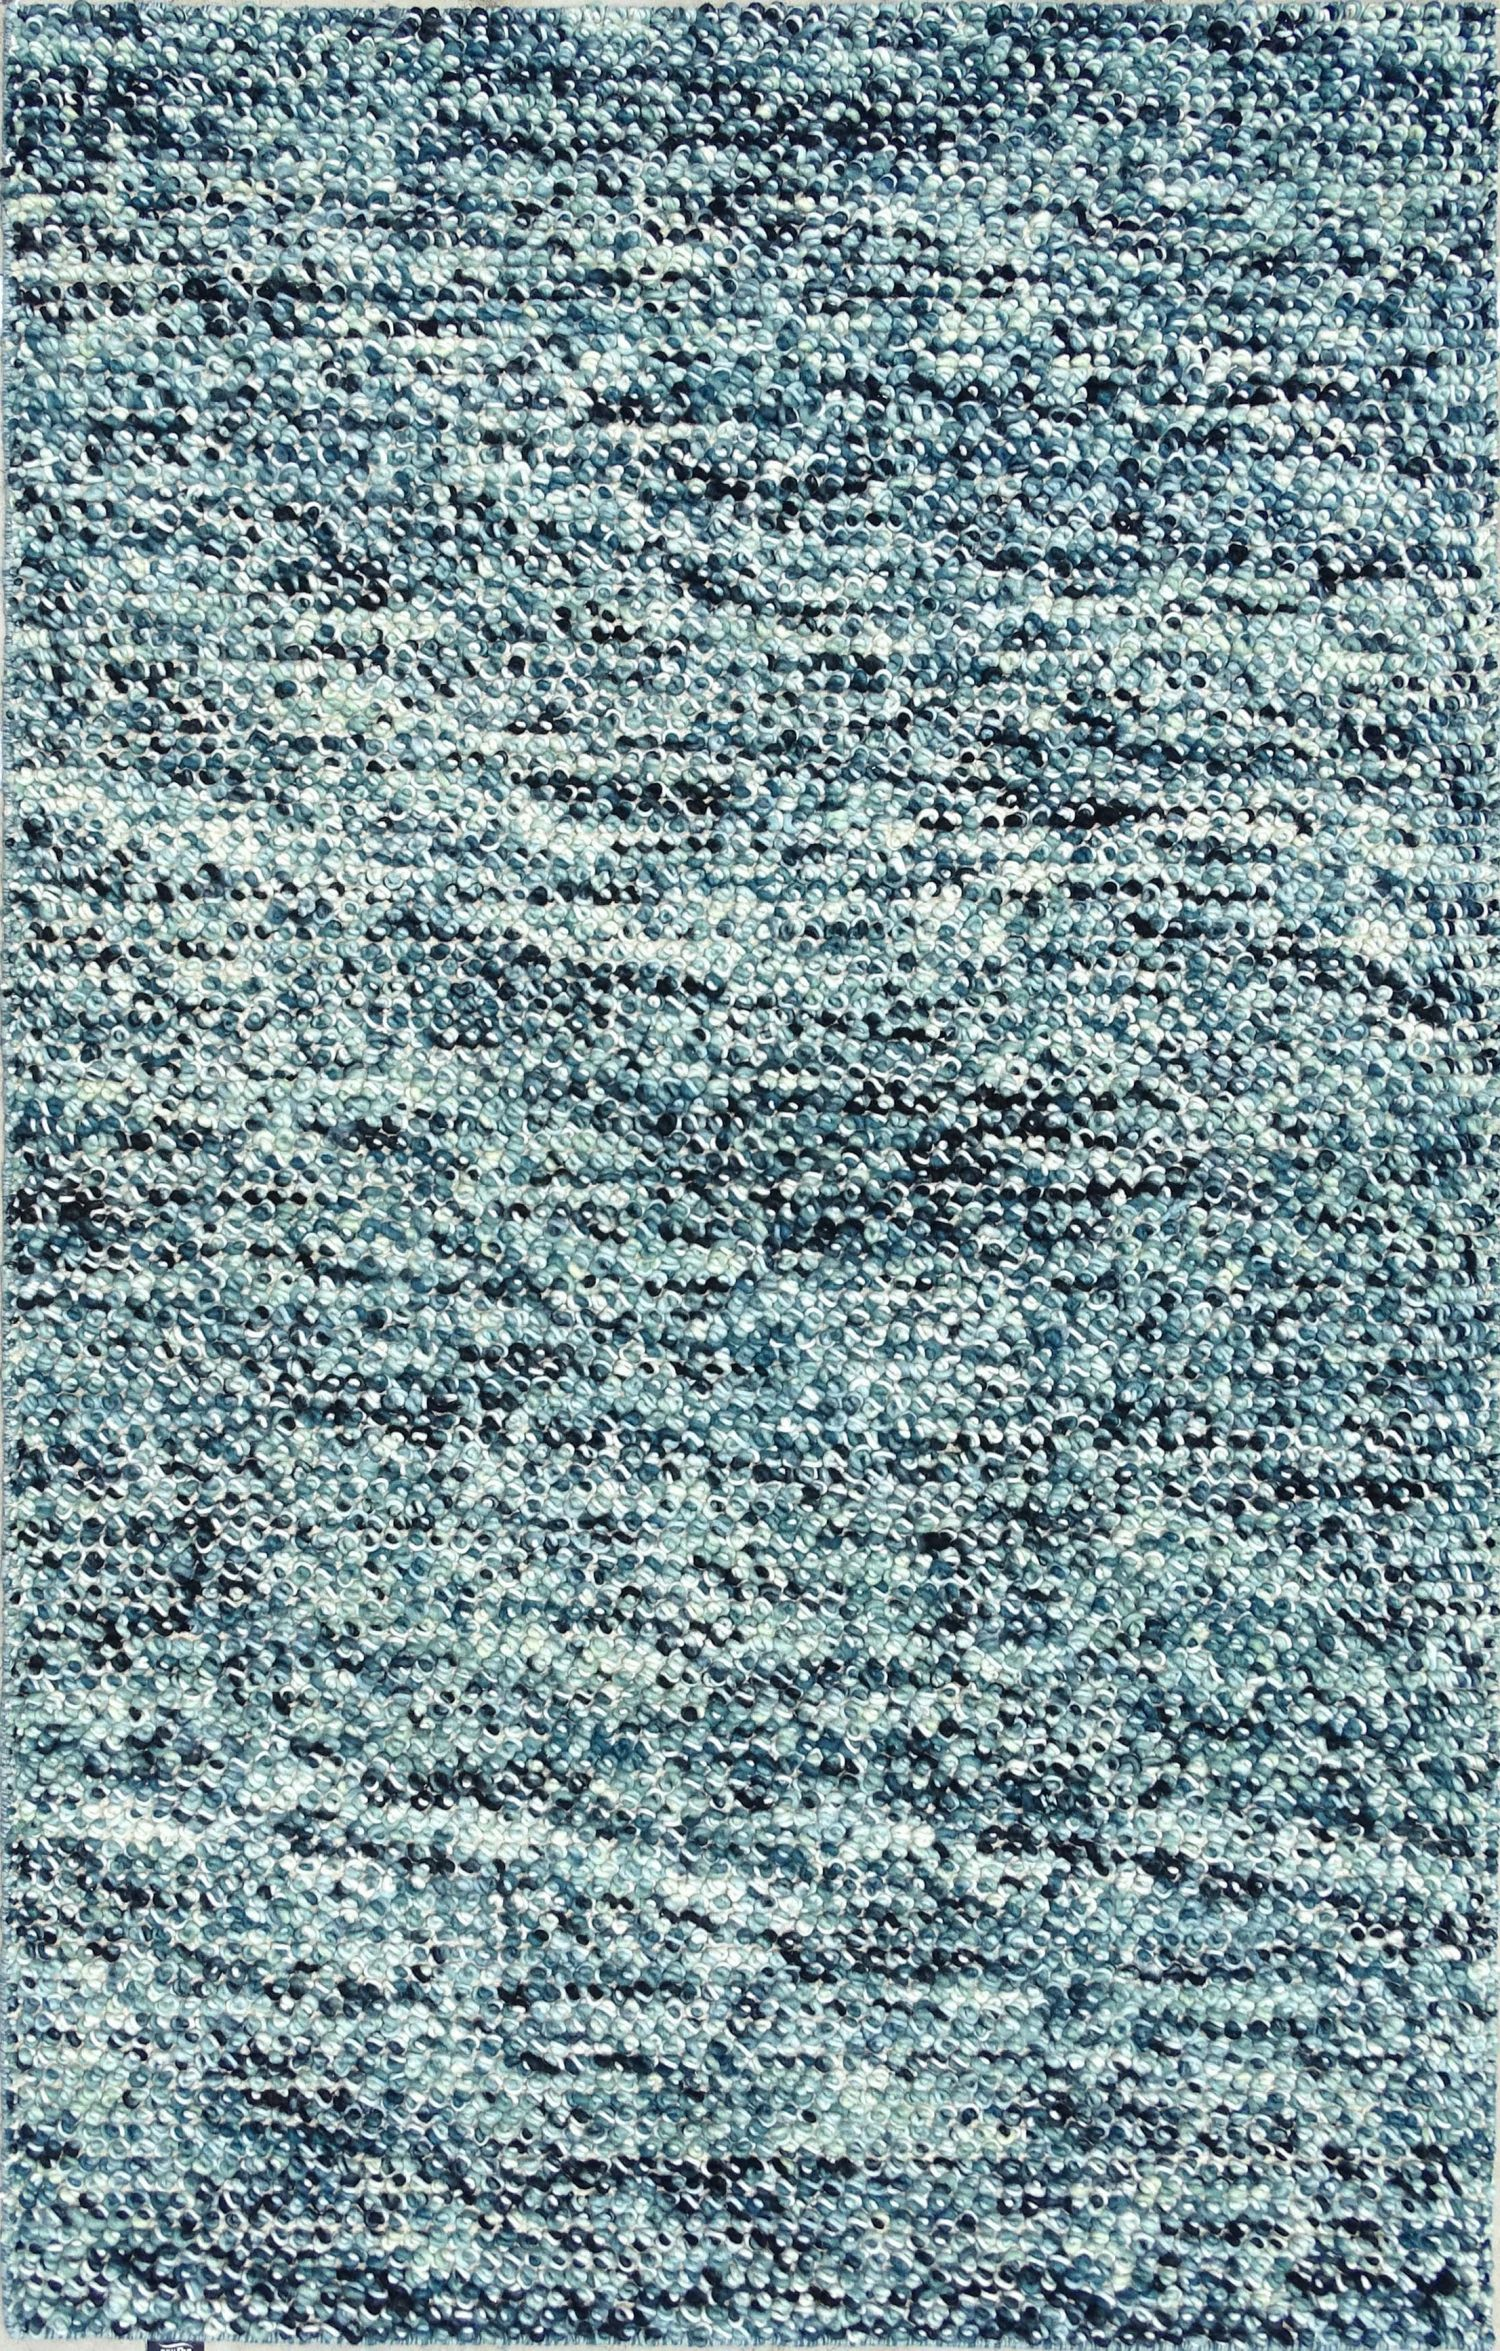 volume-blue-waters textured rugs